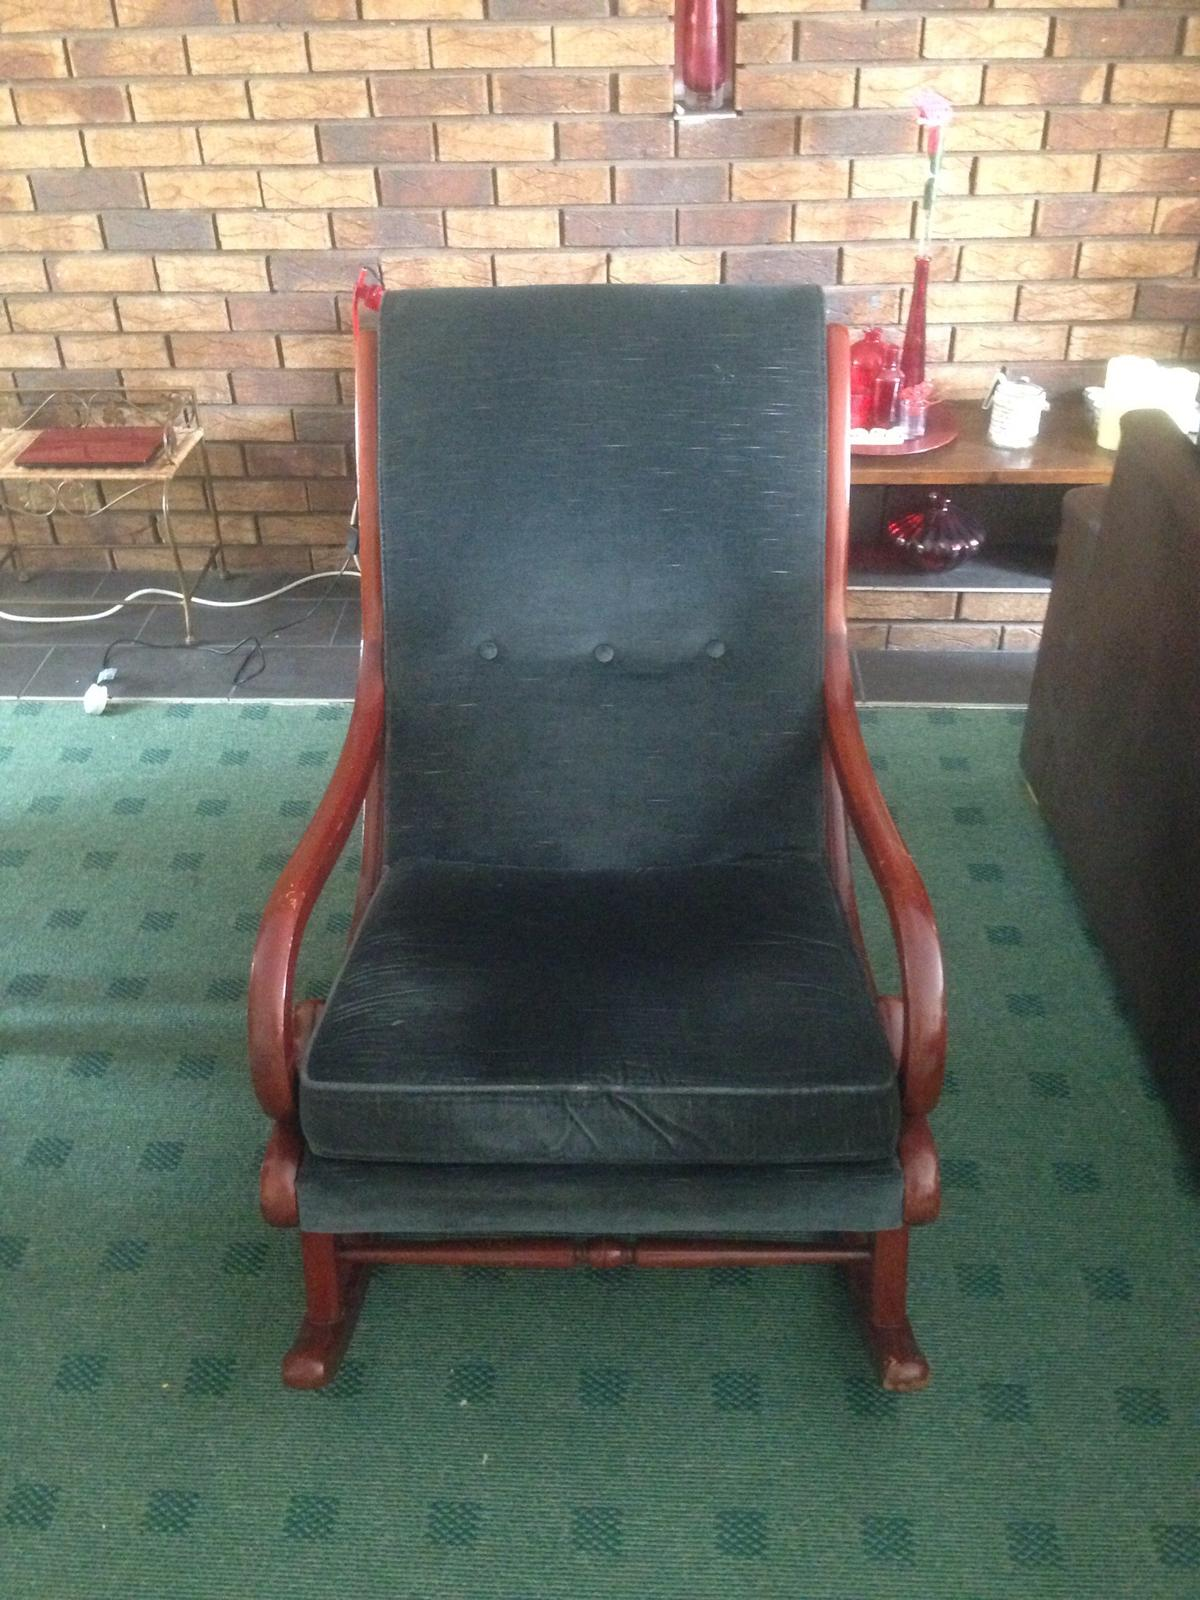 Prime Parker Knoll Vintage Rocking Chair In Wn5 Wigan For 40 00 Machost Co Dining Chair Design Ideas Machostcouk